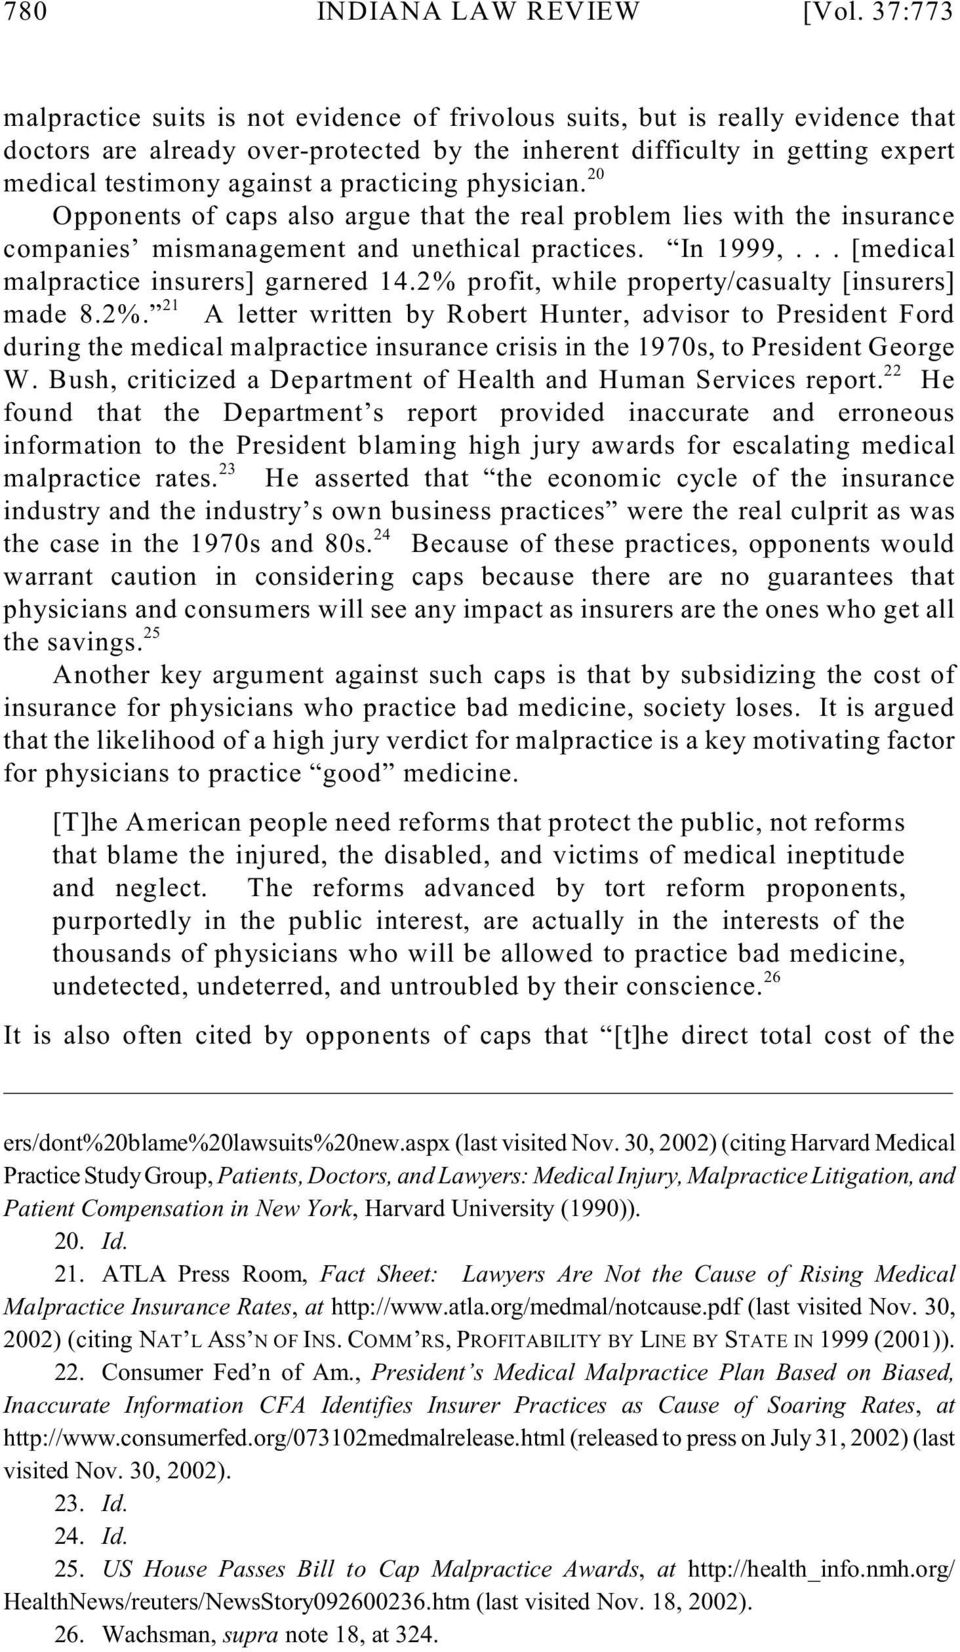 practicing physician. 20 Opponents of caps also argue that the real problem lies with the insurance companies mismanagement and unethical practices. In 1999,.